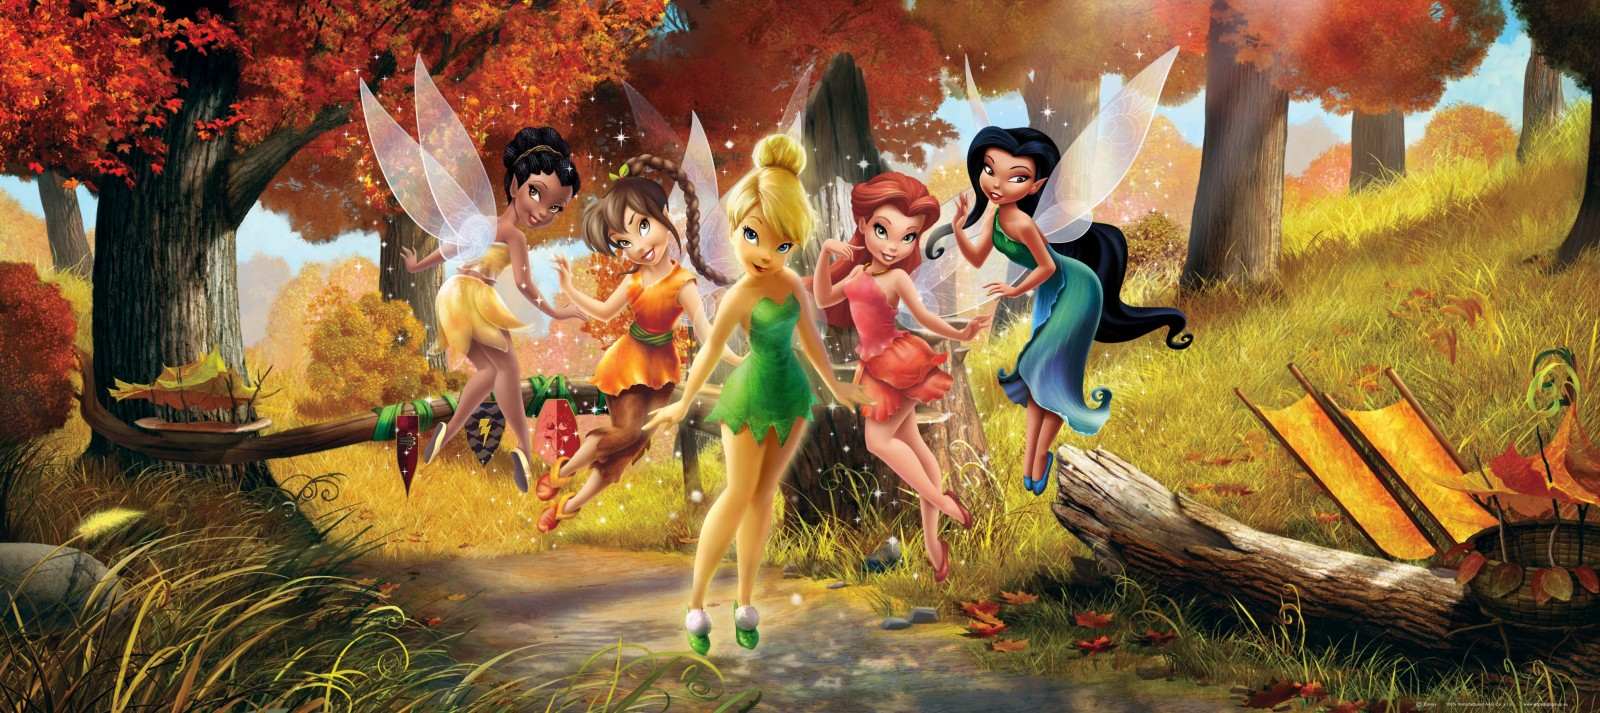 Photowallpaper Disney Tinkerbell 202x90cm 2 21ydx35 43